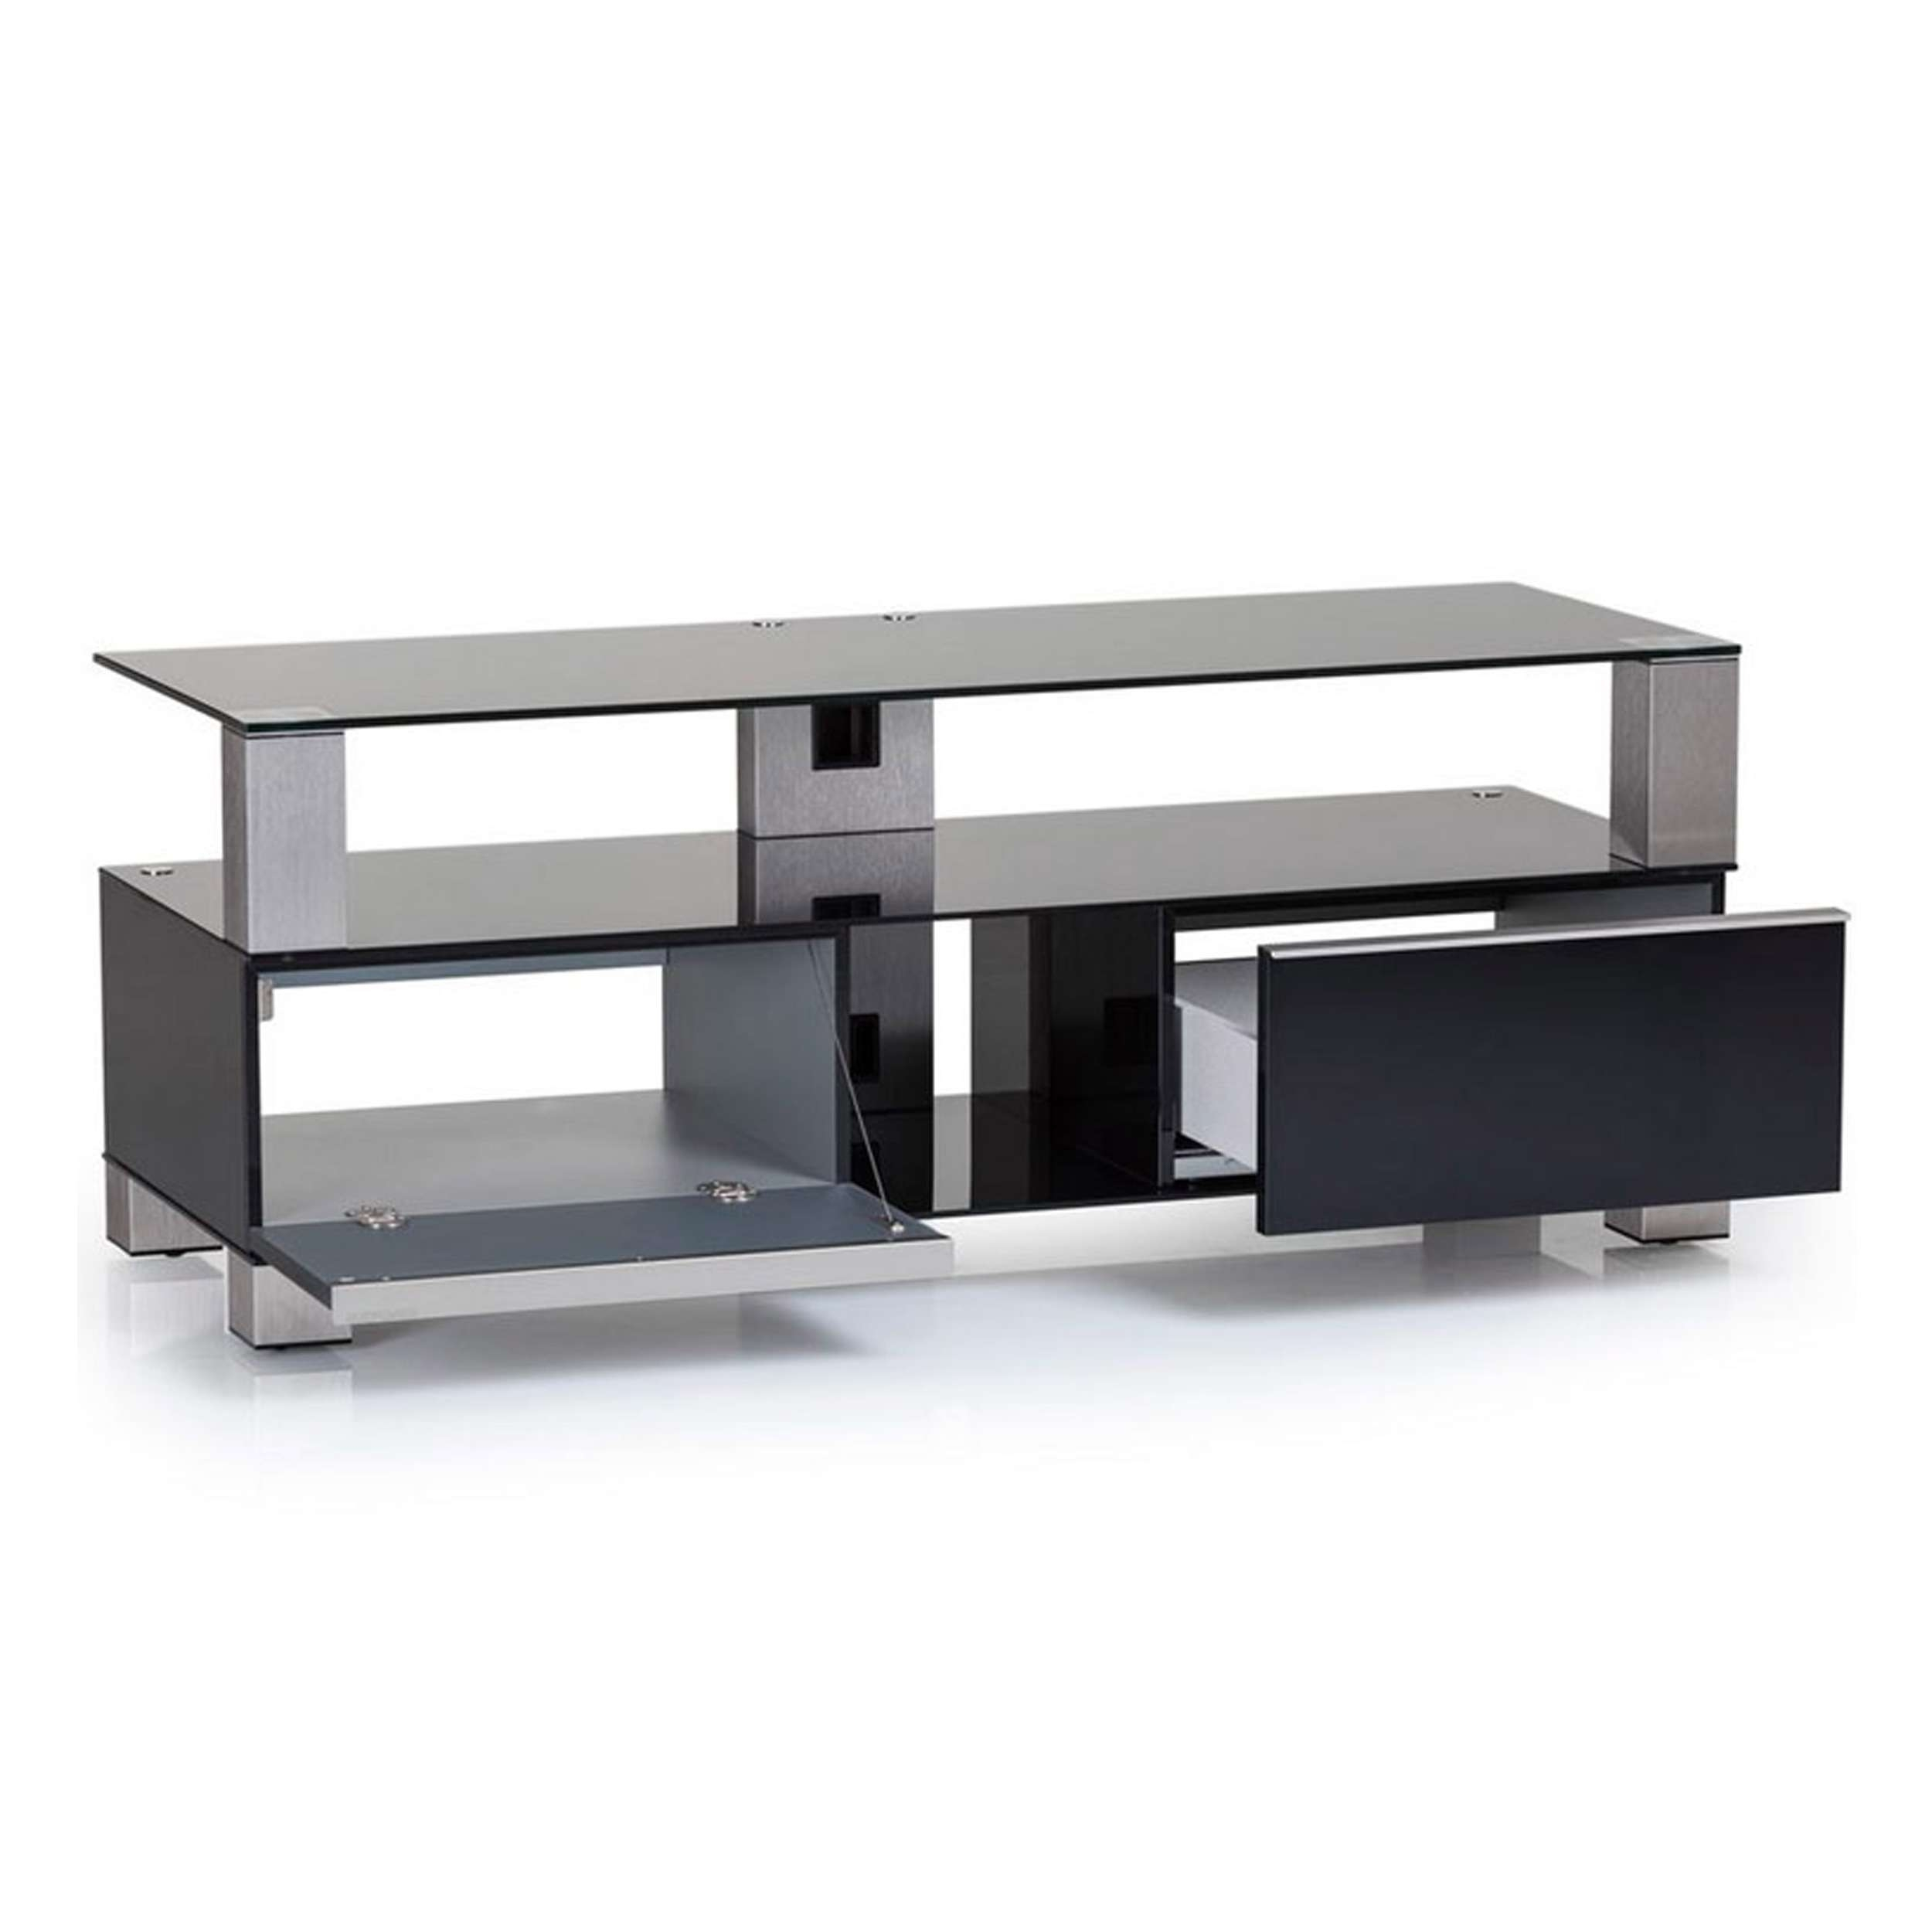 """Sonorous Md9120 B Inx Blk Black Cabinet For Tvs Up To 50"""" Pertaining To Sonorous Tv Cabinets (View 4 of 20)"""